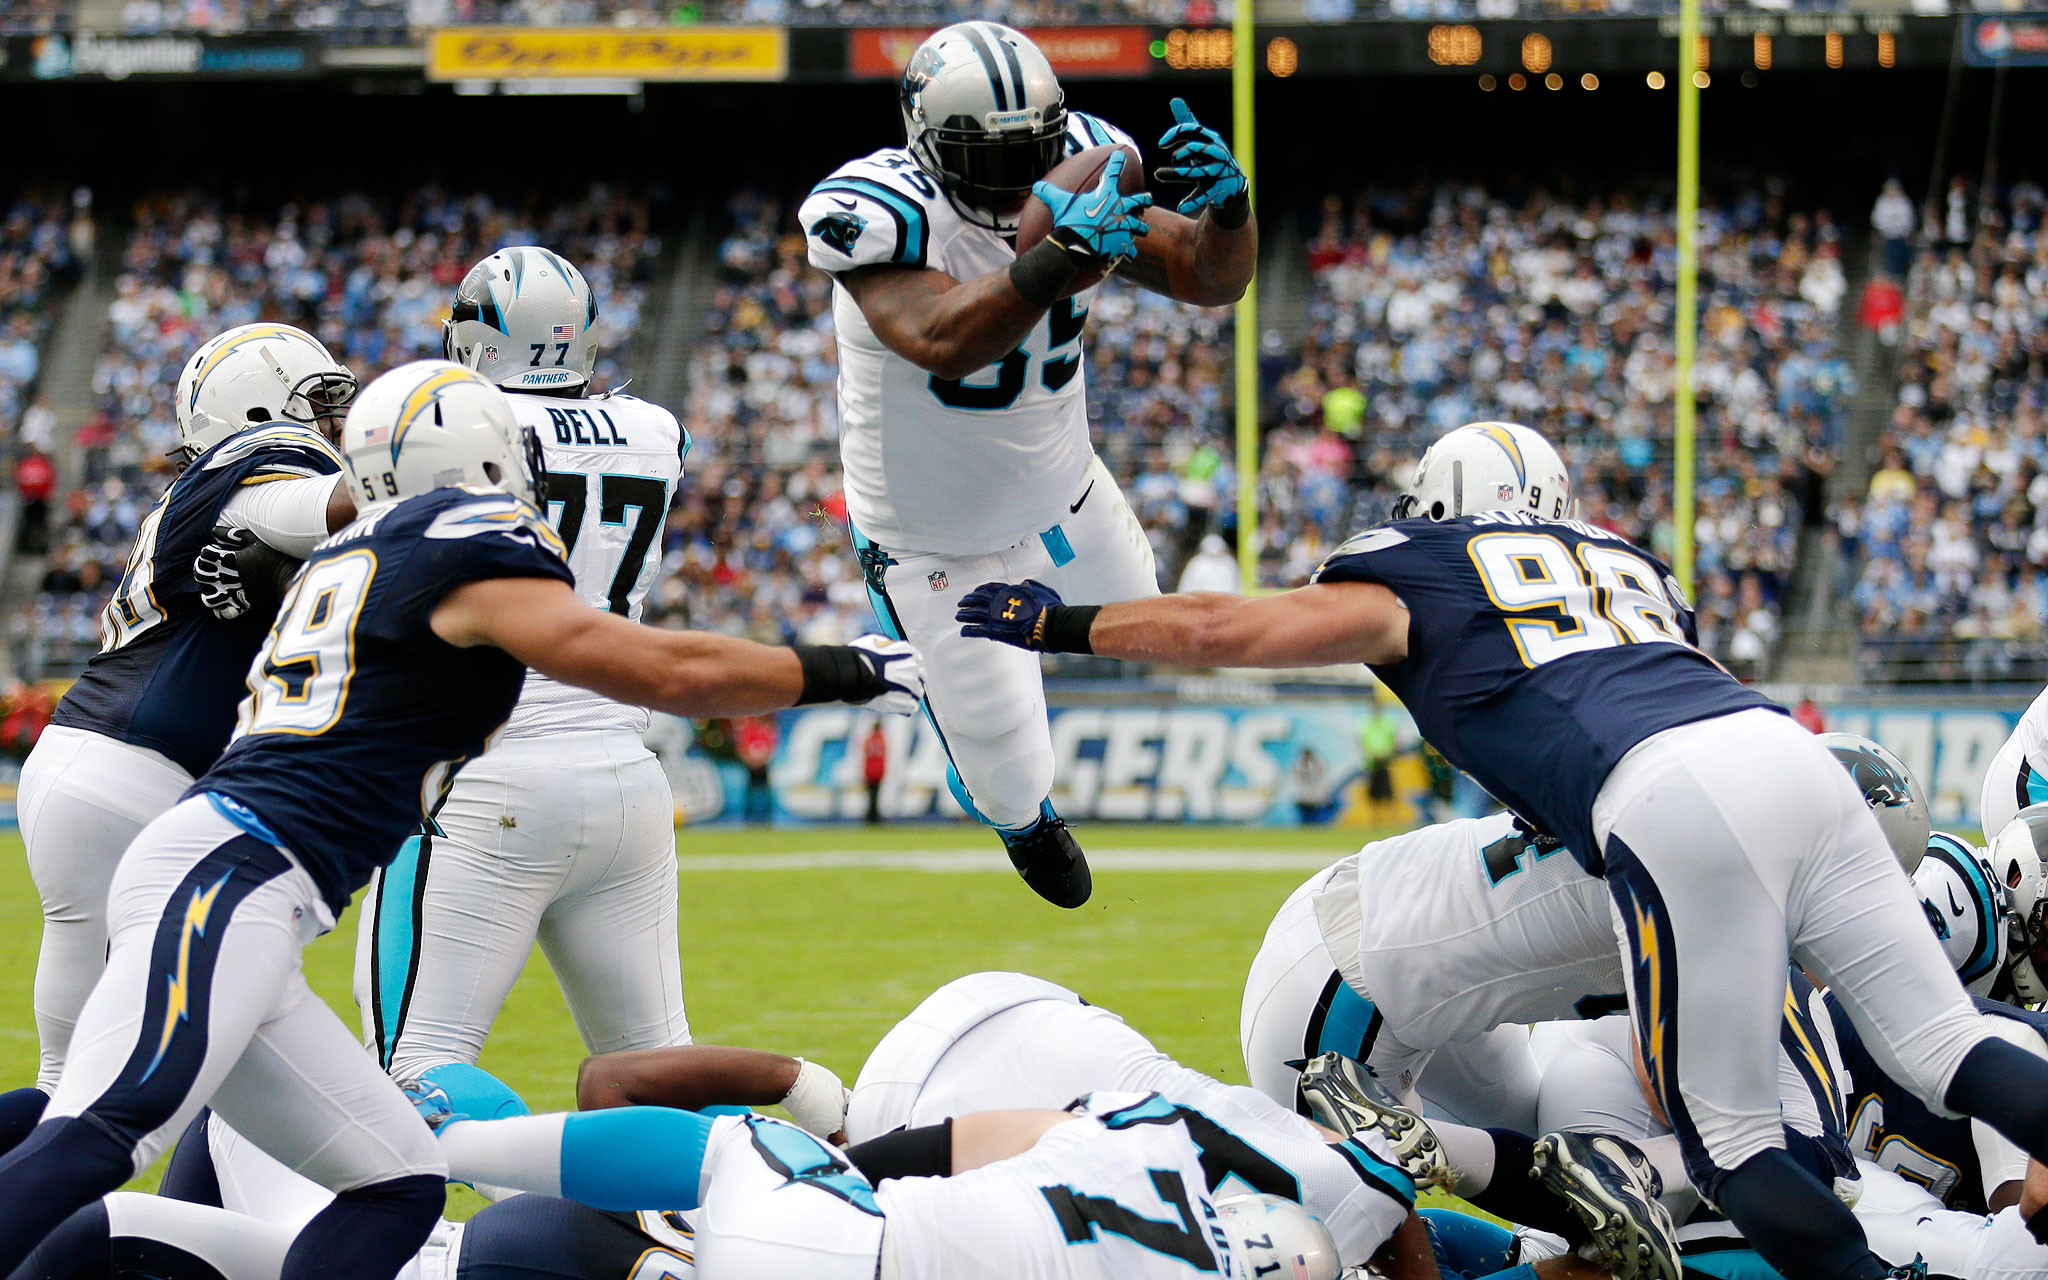 a discussion on the american football league American football livescore service provides fast live real time results and scores for nfl and other major leagues we use cookies to improve your experience on this website by continuing to browse our site you agree to our use of cookies.